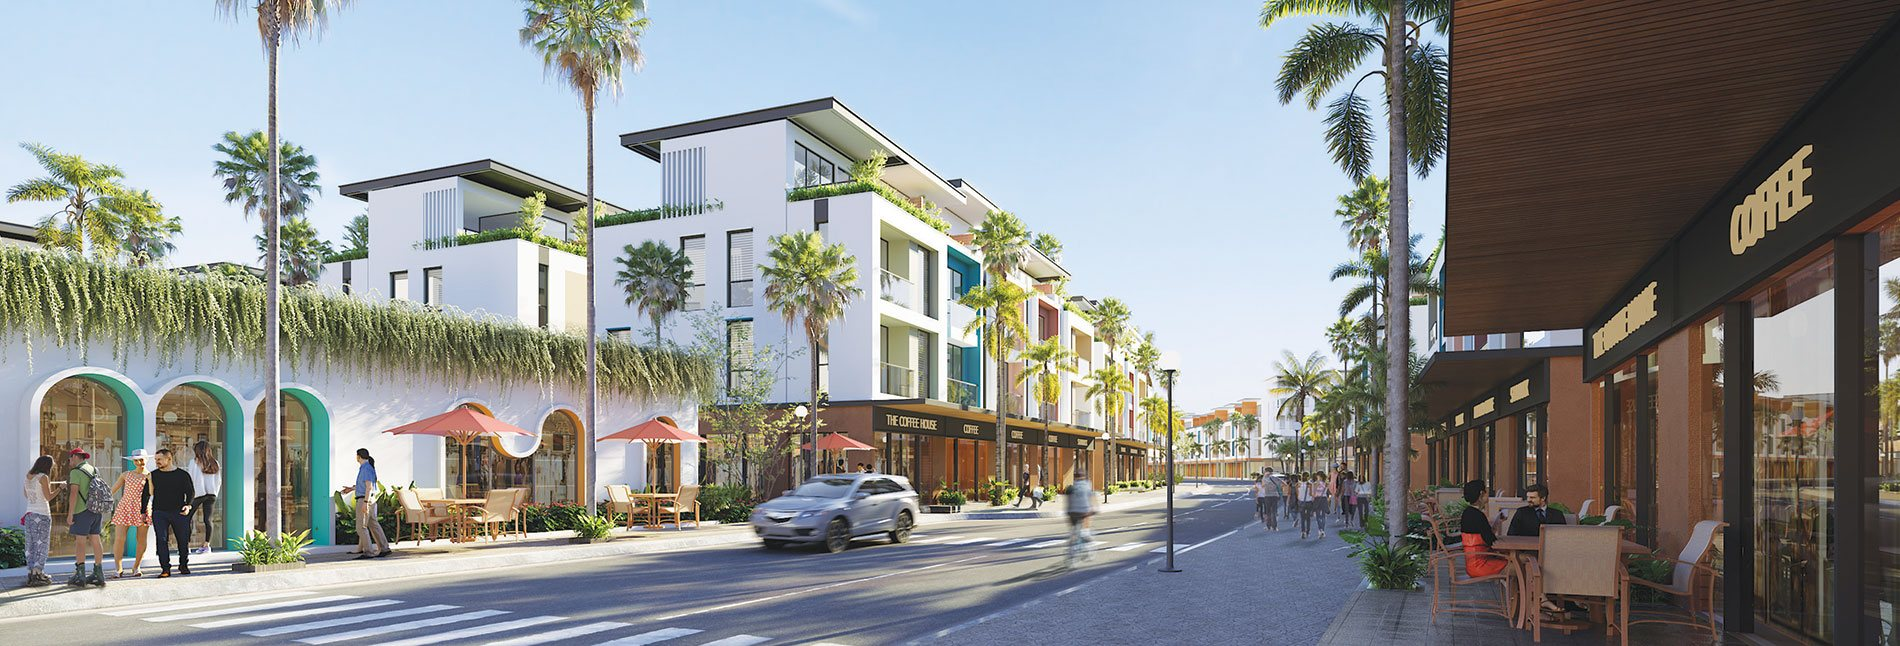 meyhomes-capital-phu-quoc-28